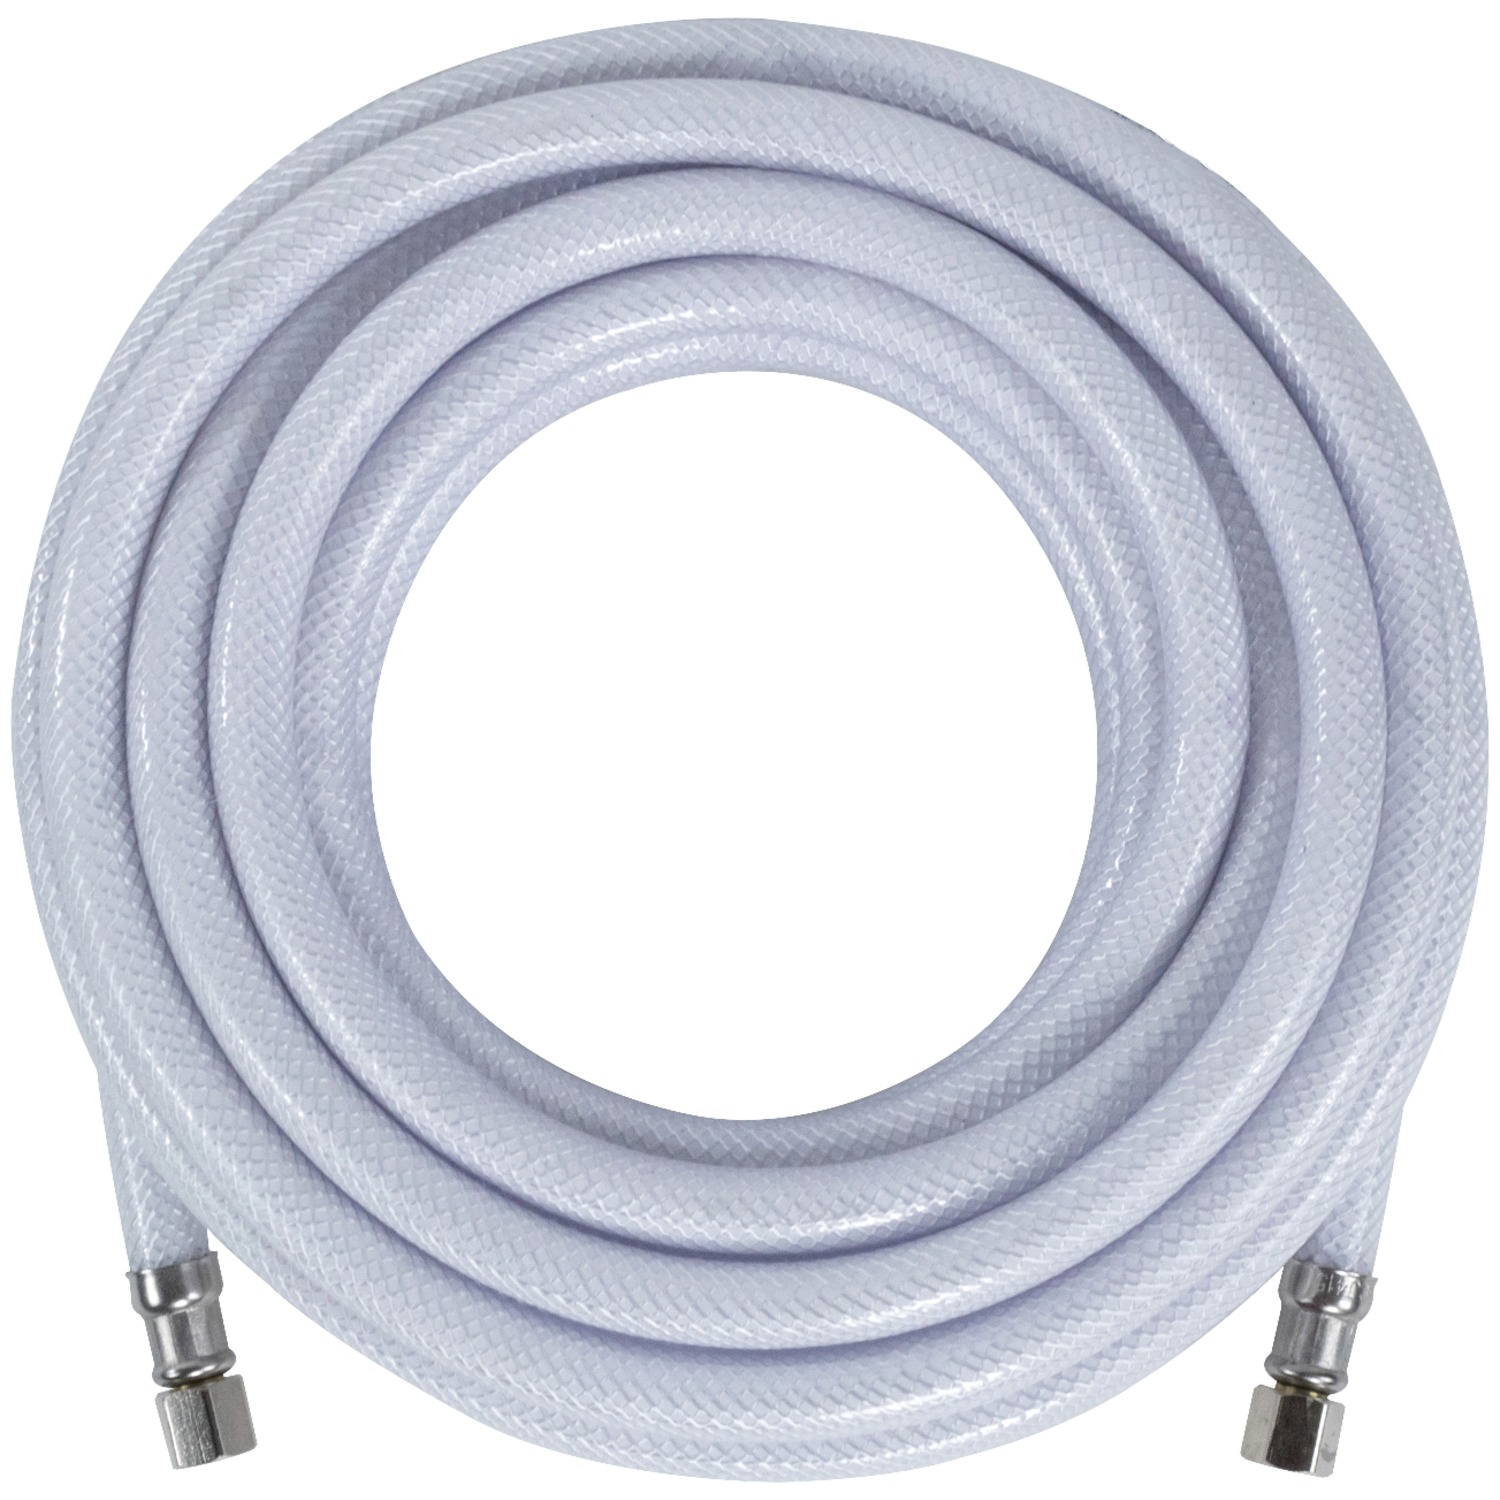 "Certified Appliance IM300P Polyvinyl Ice Maker Connector (25ft, 1/4"" Connector)"